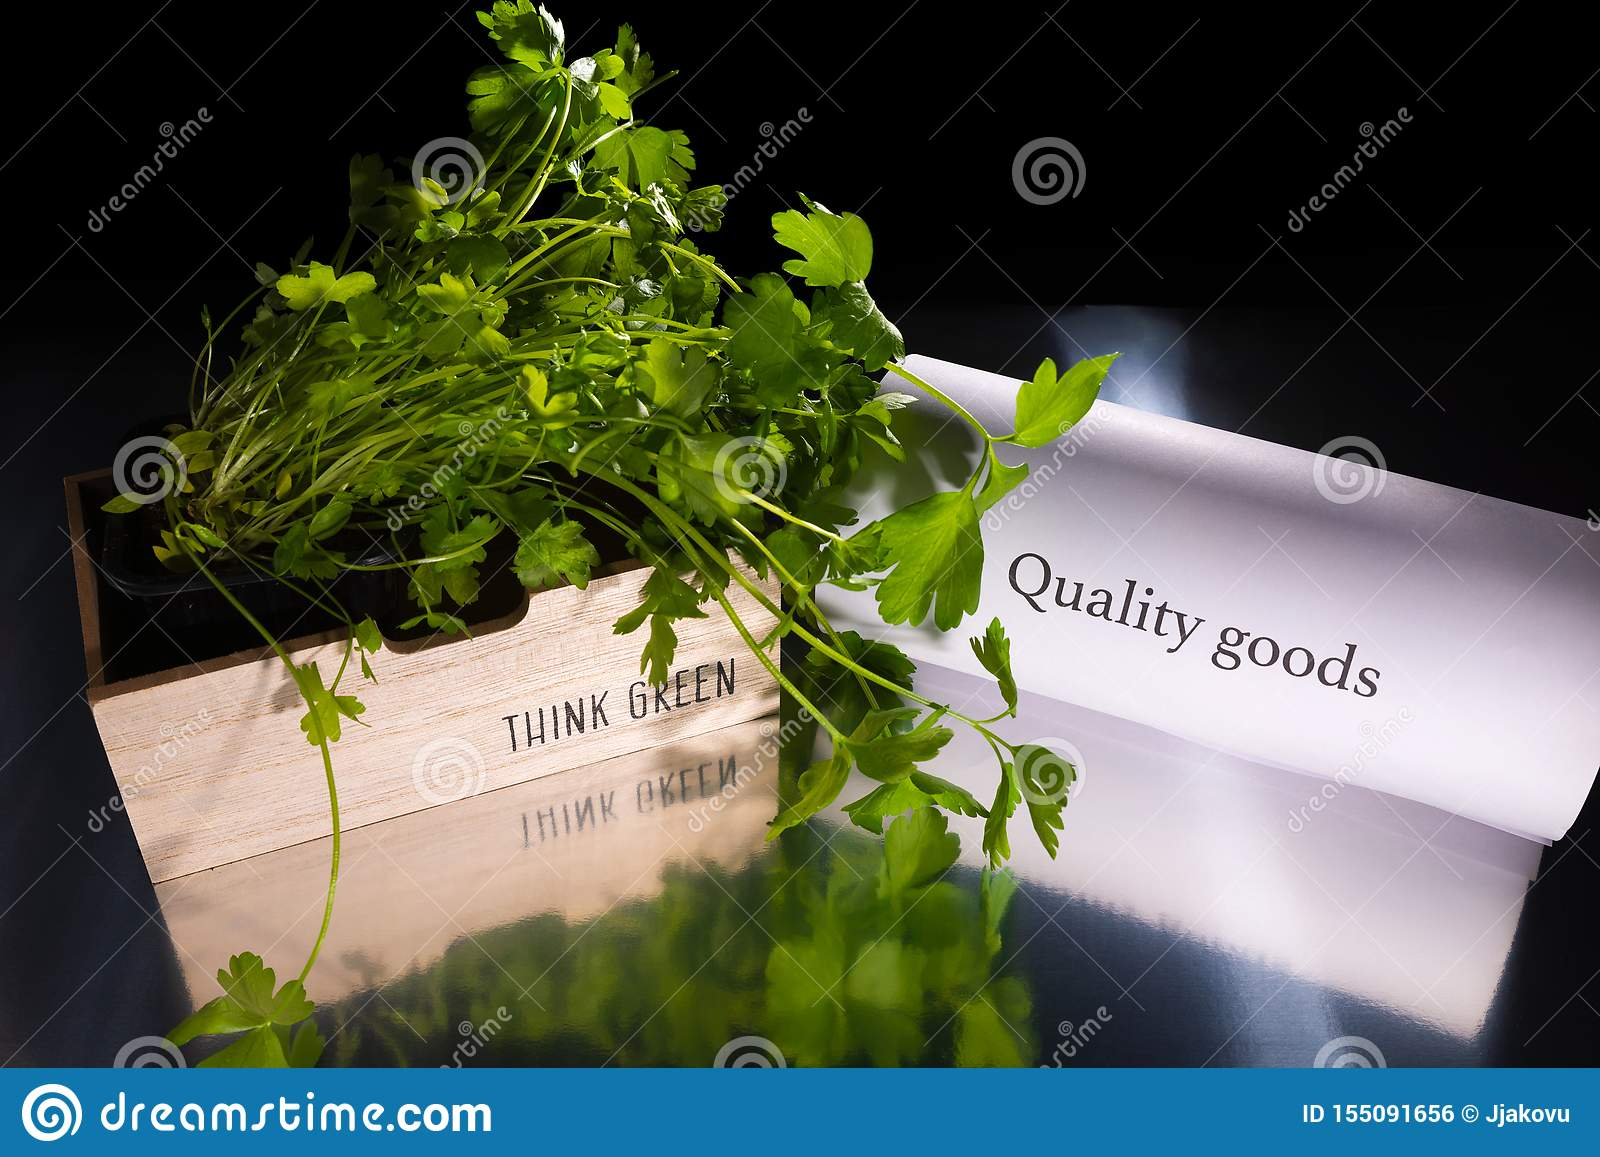 Wooden basket with green plant/parsley is on the transparent table/background. The basket has note `Think green`. Near the basket